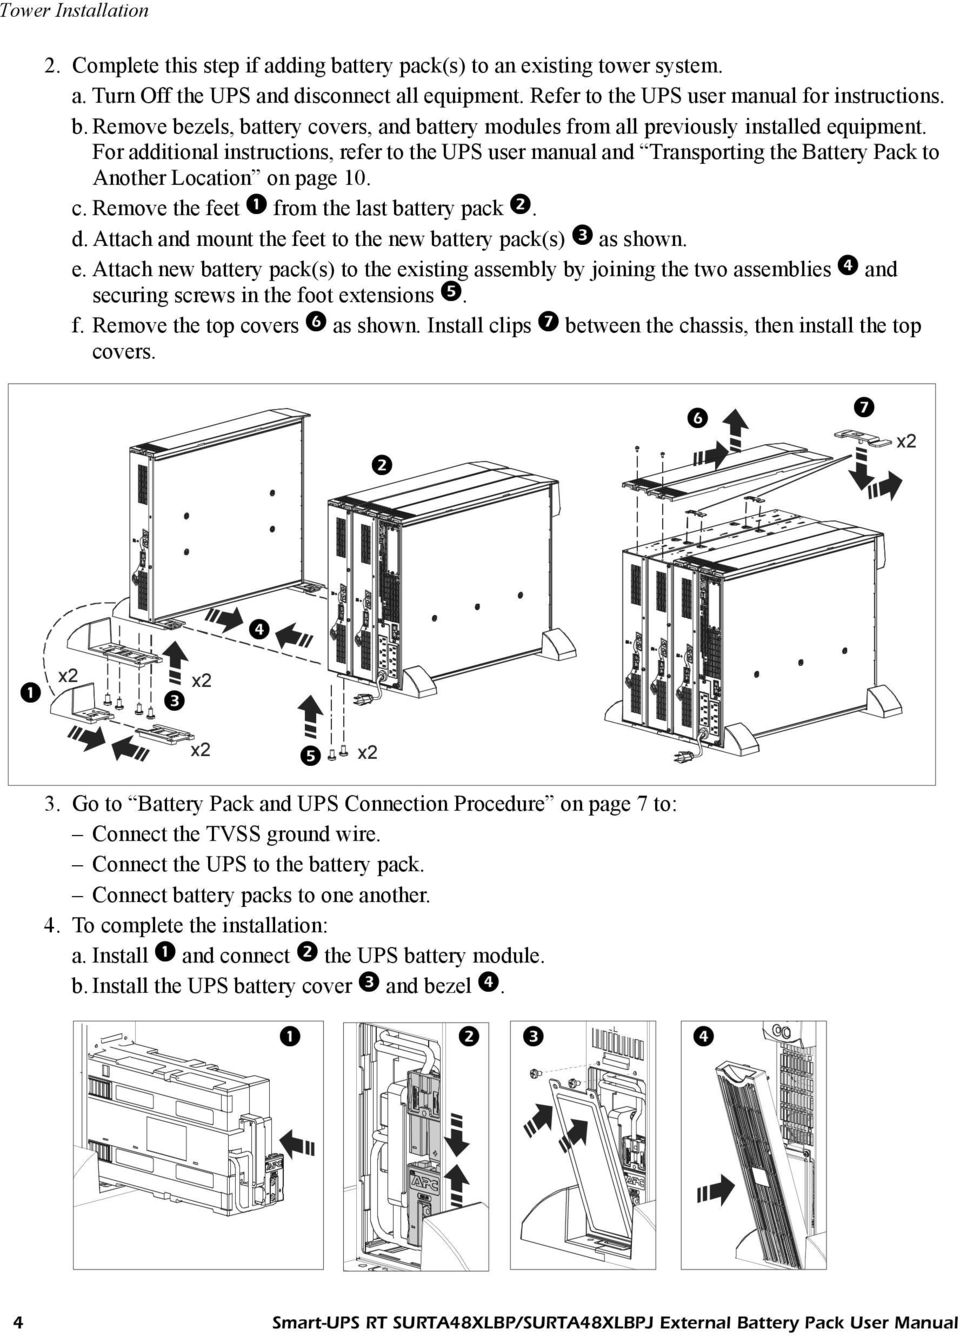 Apc Smart Ups Rt Surta48xlbp Surta48xlbpj External Battery Pack User Wiring Diagram In Line Attach And Mount The Feet To New Packs As Shown